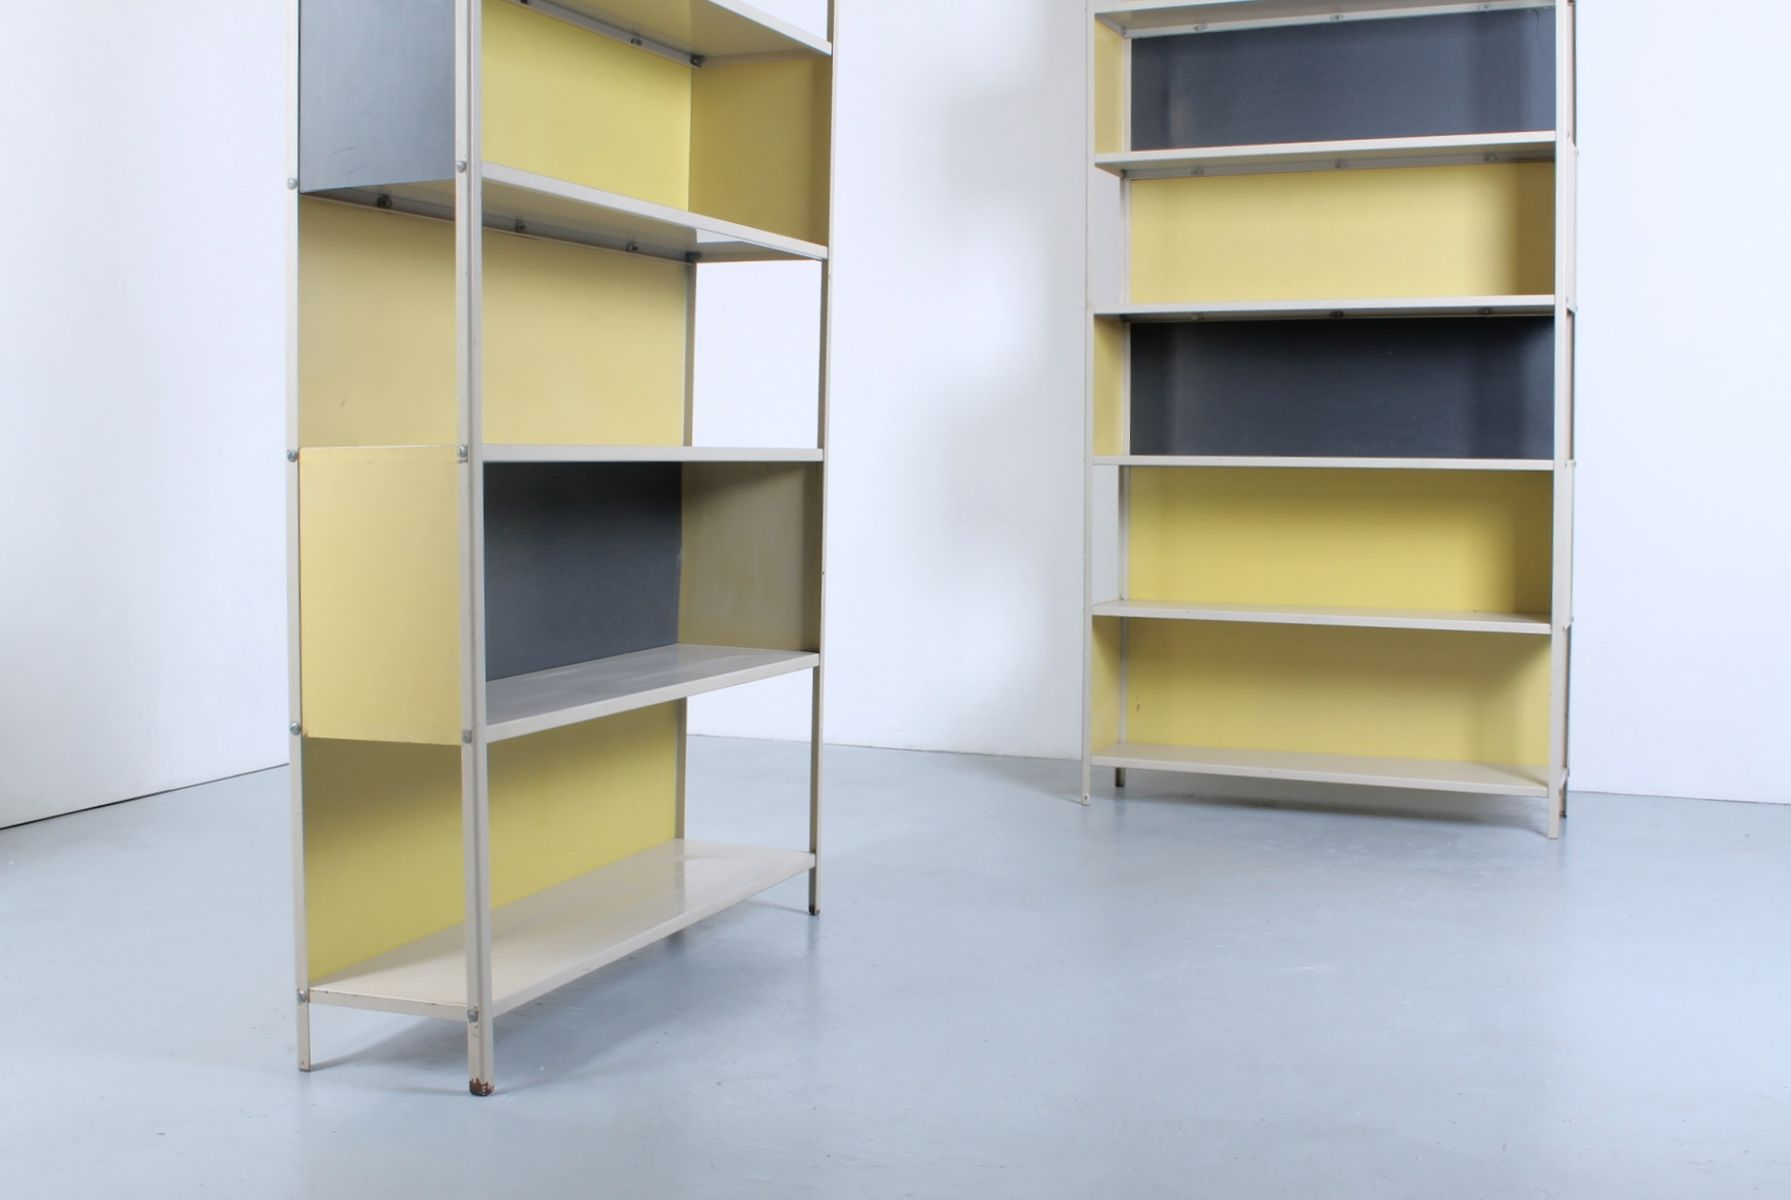 space bookcase room dividers bookshelf design ideas inspiration as divider stylish maimazing white and a modern